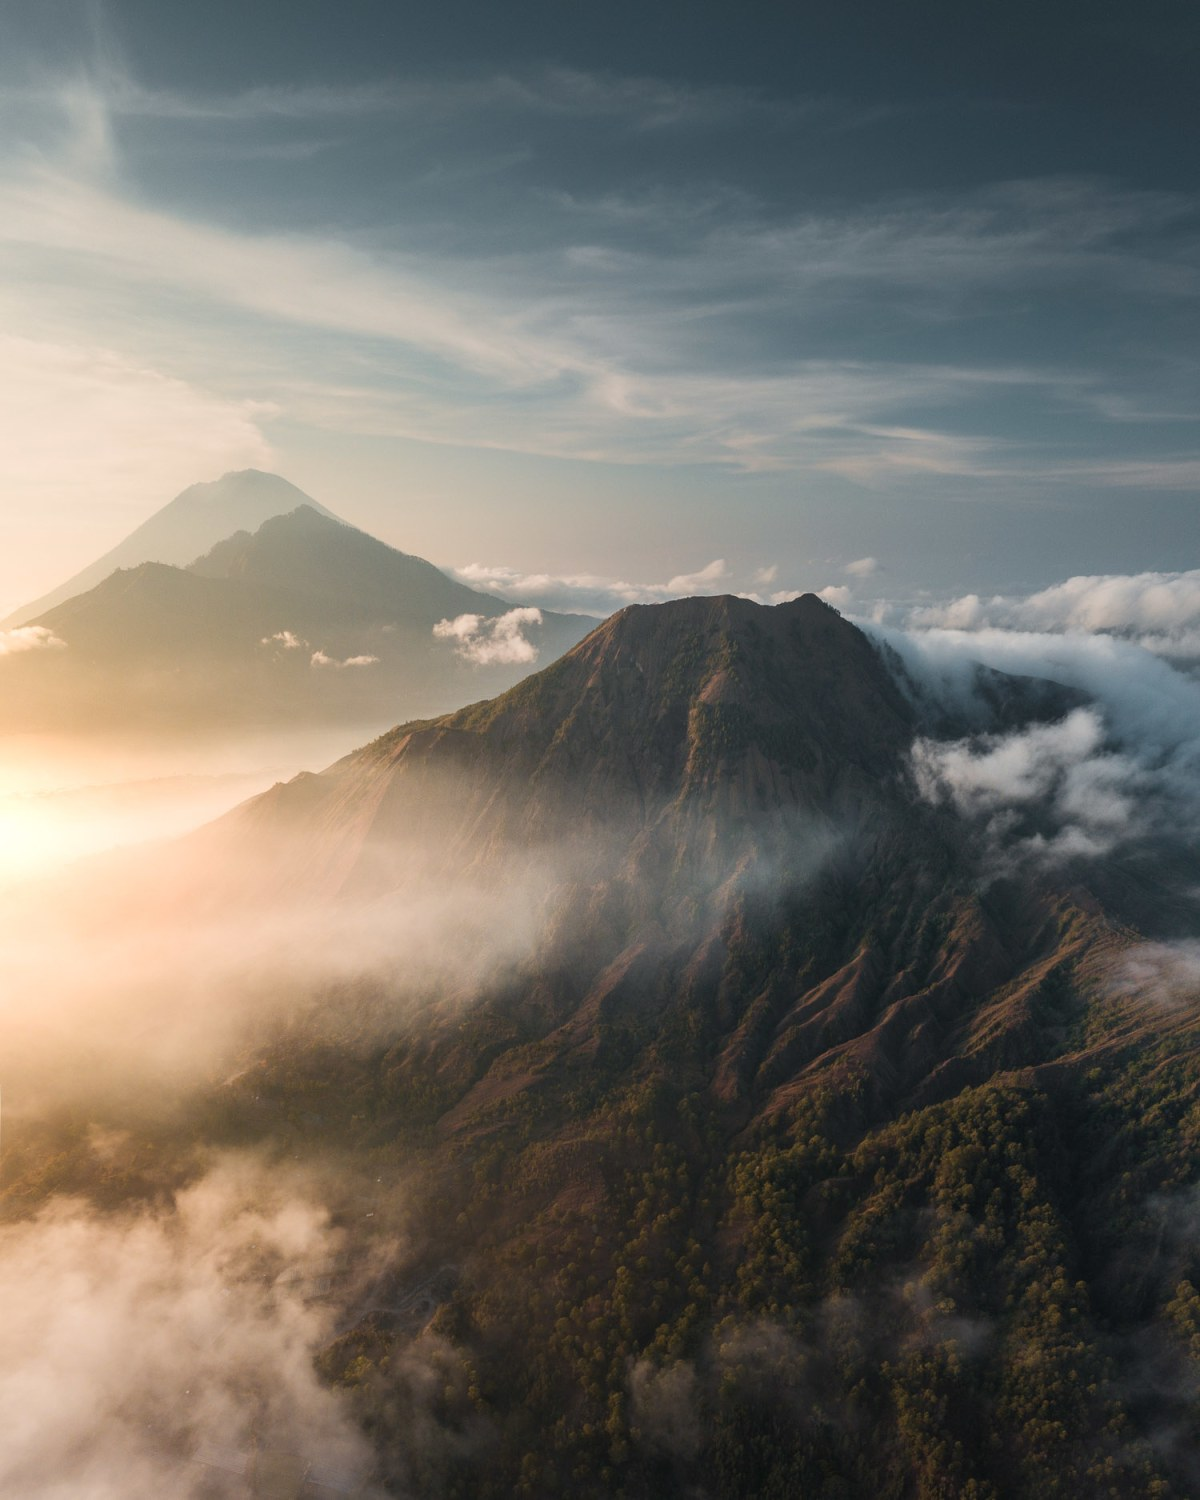 Pinggan views of morning light with clouds, volcanic sights and wild colours